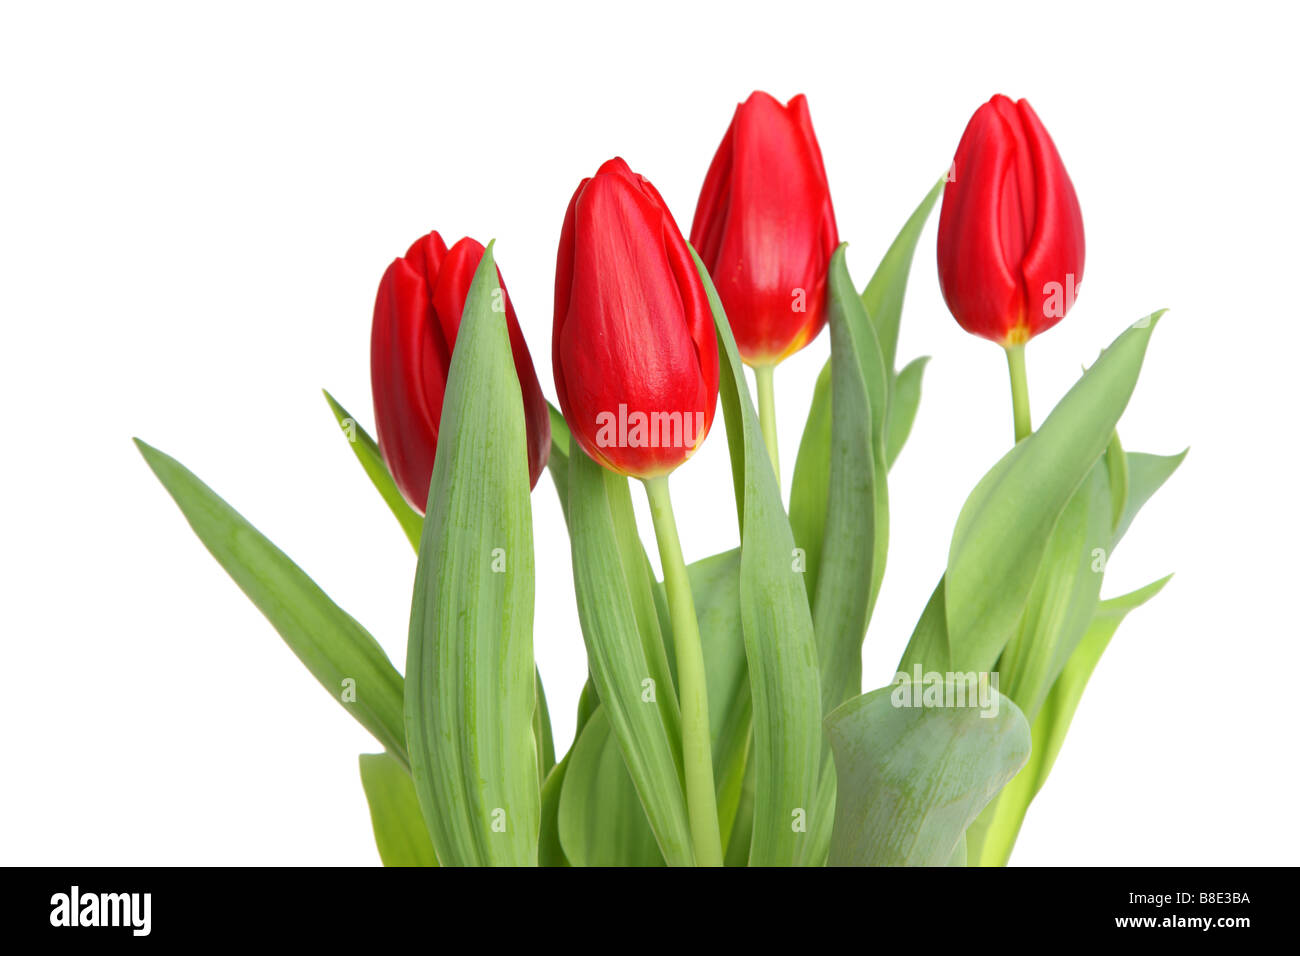 Red tulips cutout isolated on white background - Stock Image